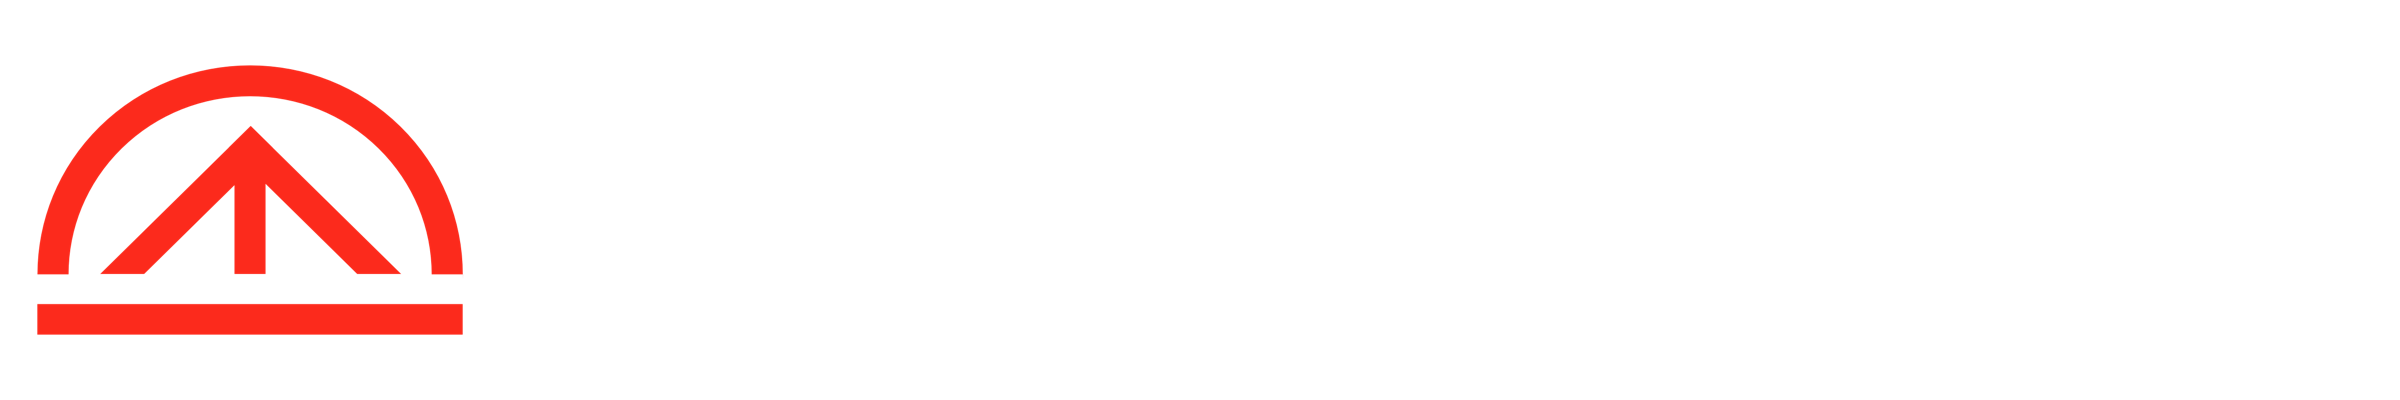 Pork Pie Software